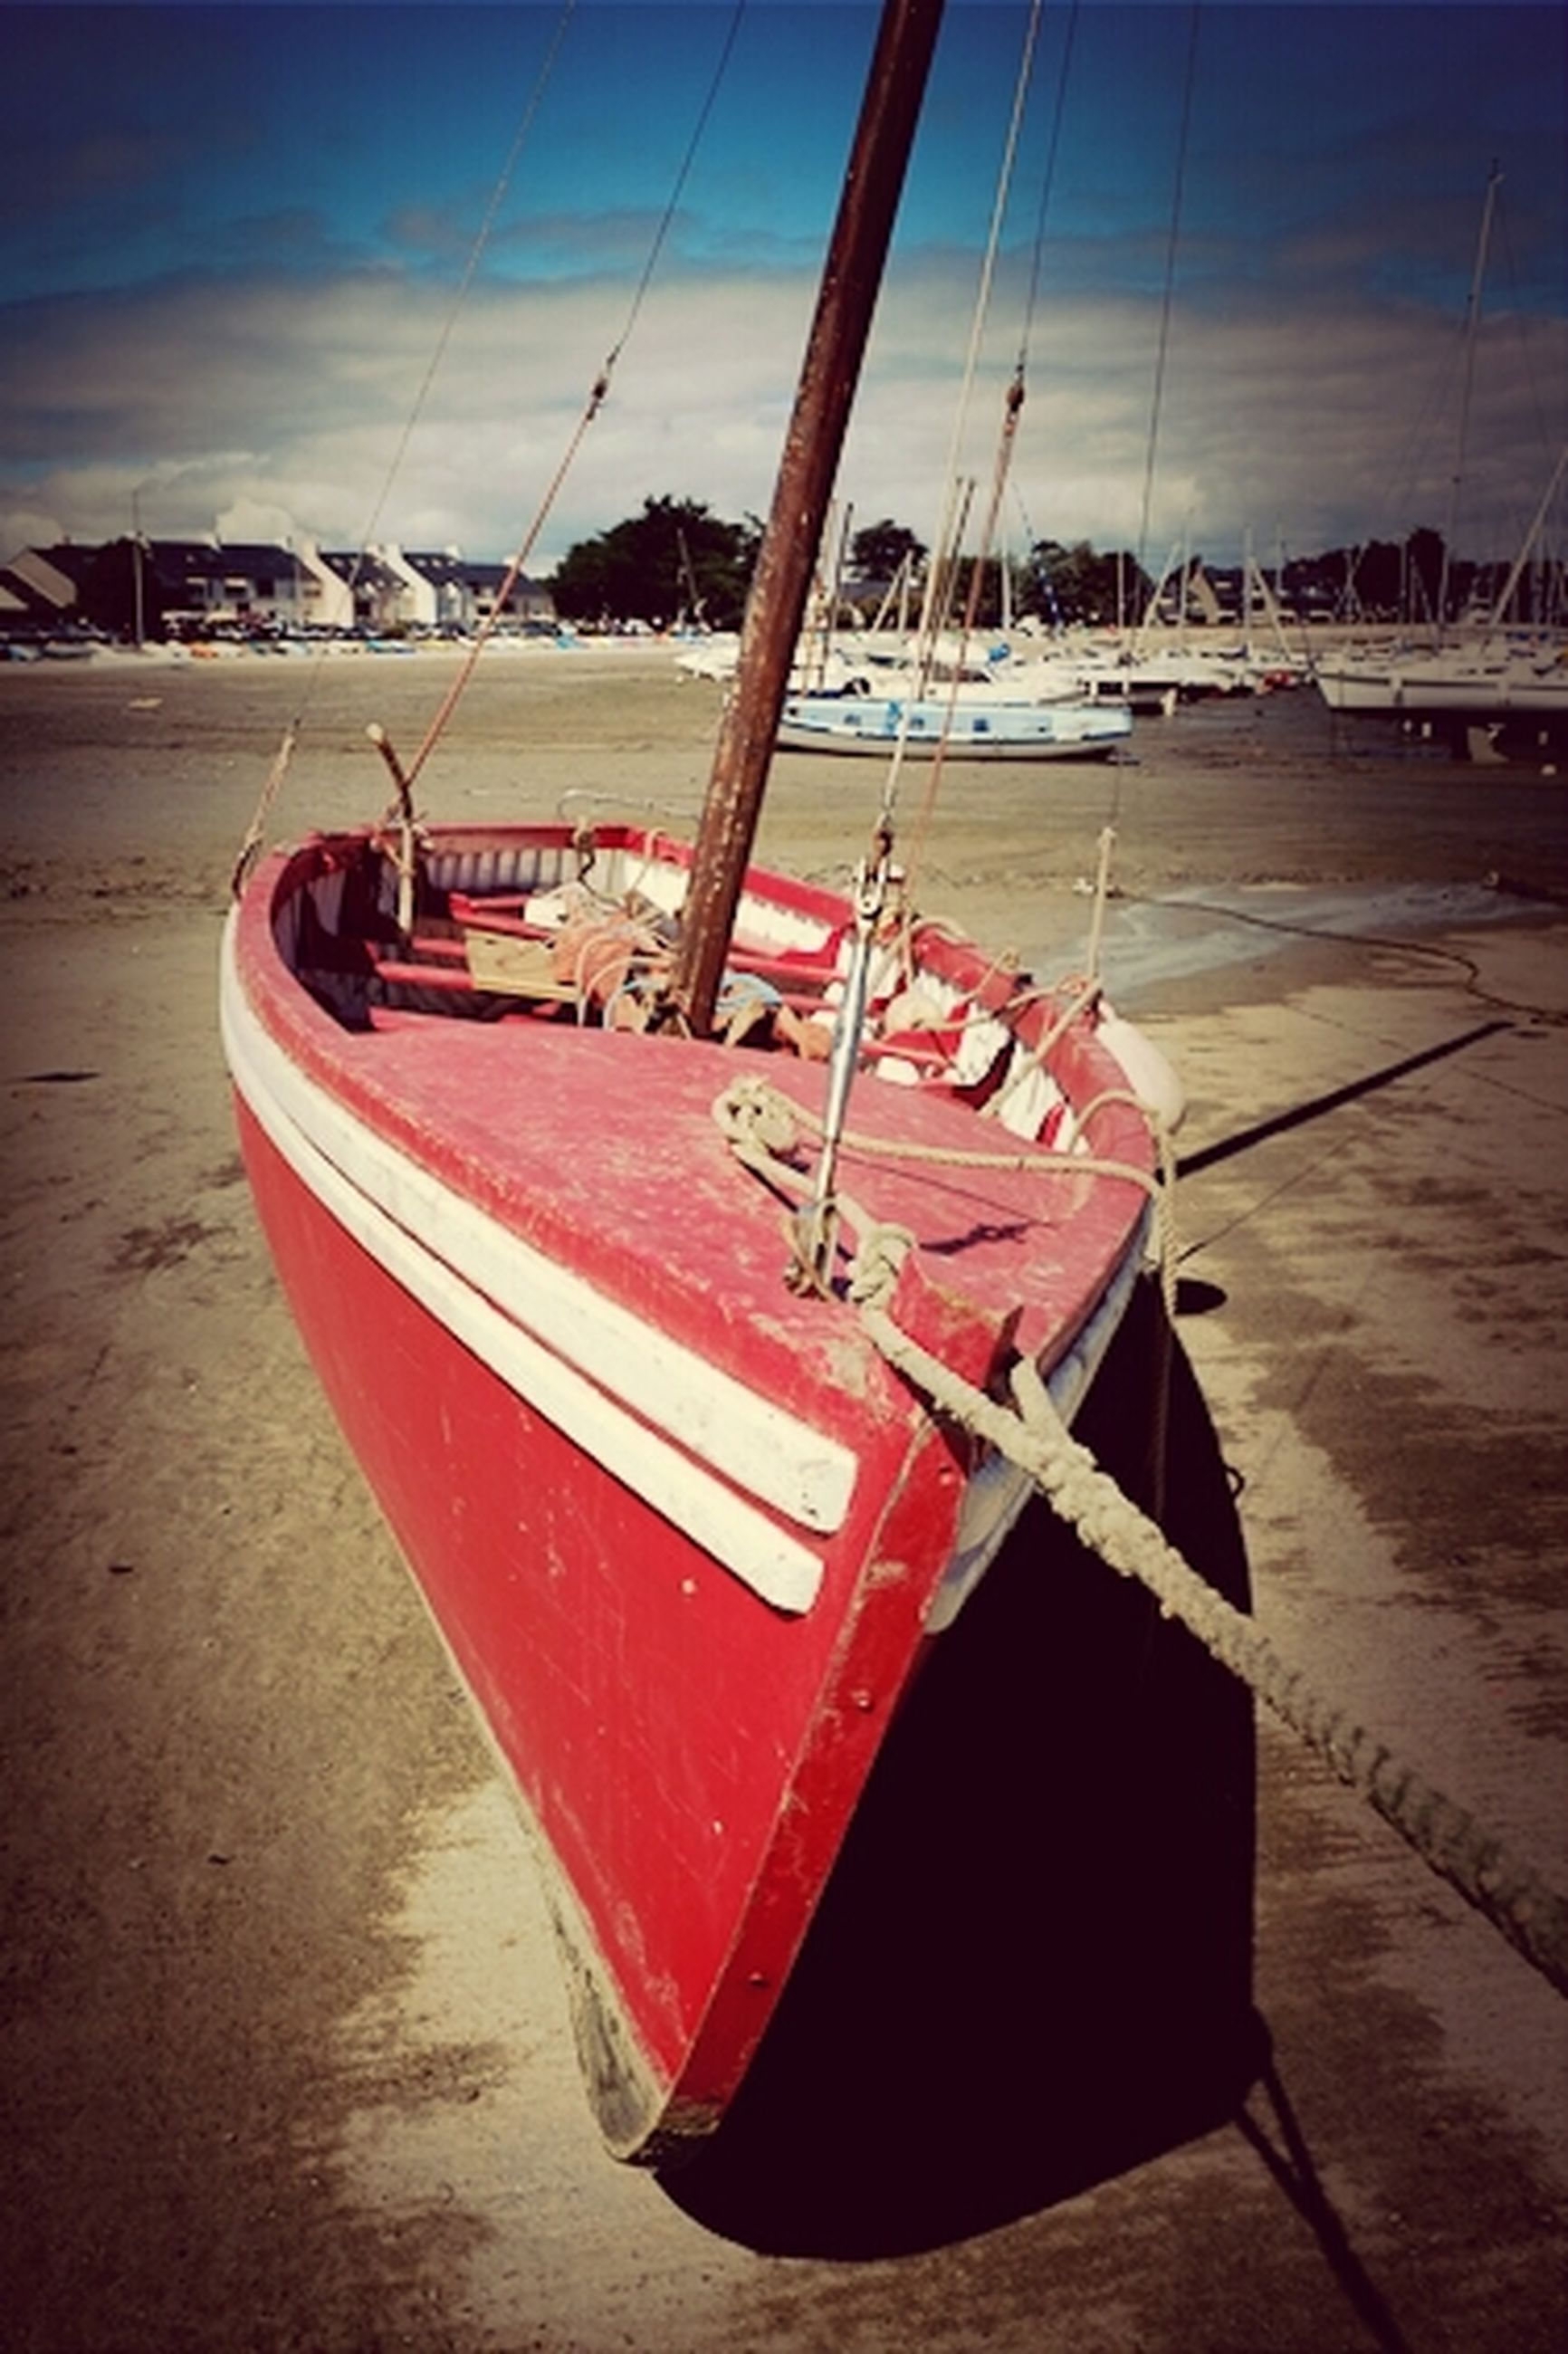 transportation, mode of transport, nautical vessel, sky, moored, red, boat, water, sea, outdoors, no people, day, travel, harbor, absence, rope, cloud - sky, sunlight, metal, empty